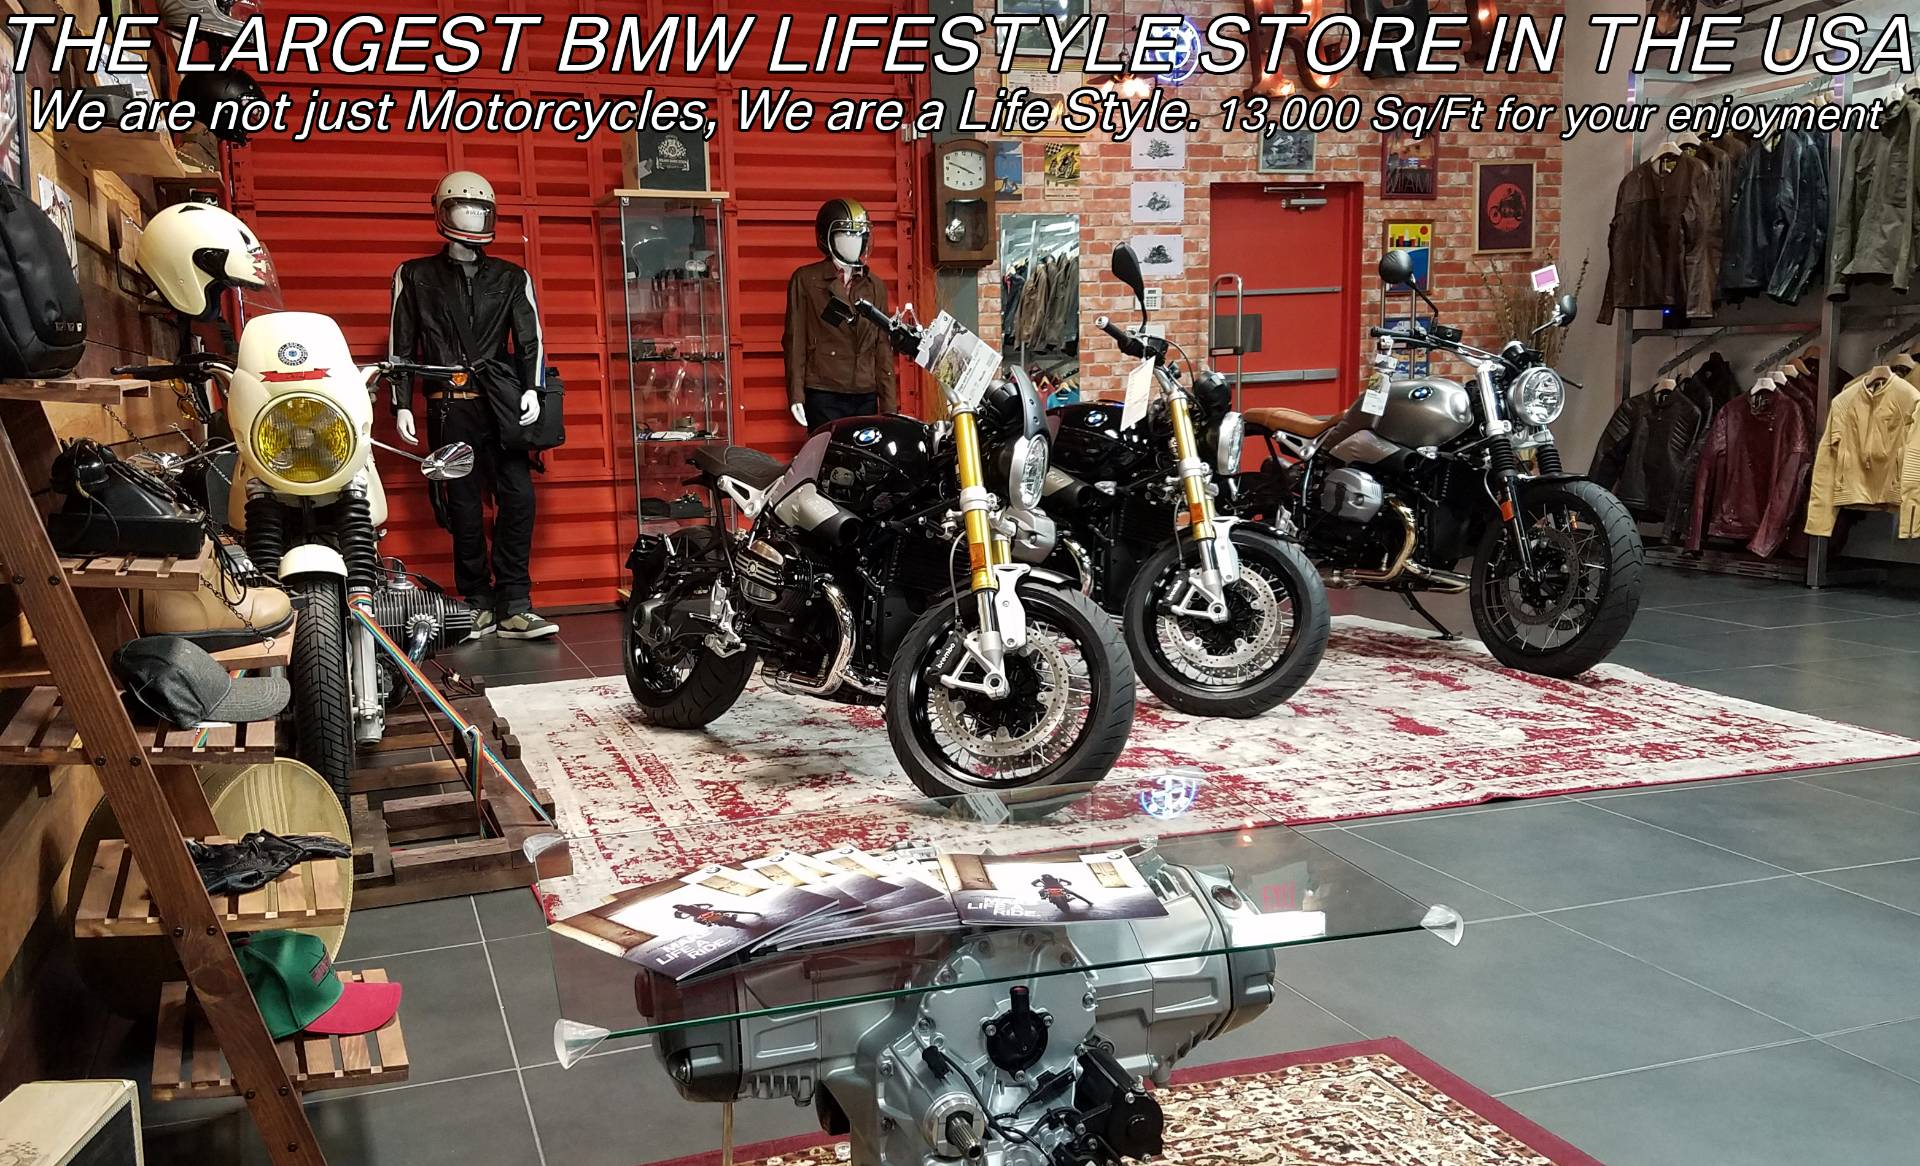 New 2019 BMW C 400 X for sale, BMW C 400X for sale, BMW Scooter, new BMW Scooter, C400X, BMW Motorcycles of Miami, Motorcycles of Miami, Motorcycles Miami, New Motorcycles, Used Motorcycles, pre-owned. #BMWMotorcyclesOfMiami #MotorcyclesOfMiami #MotorcyclesMiami - Photo 20